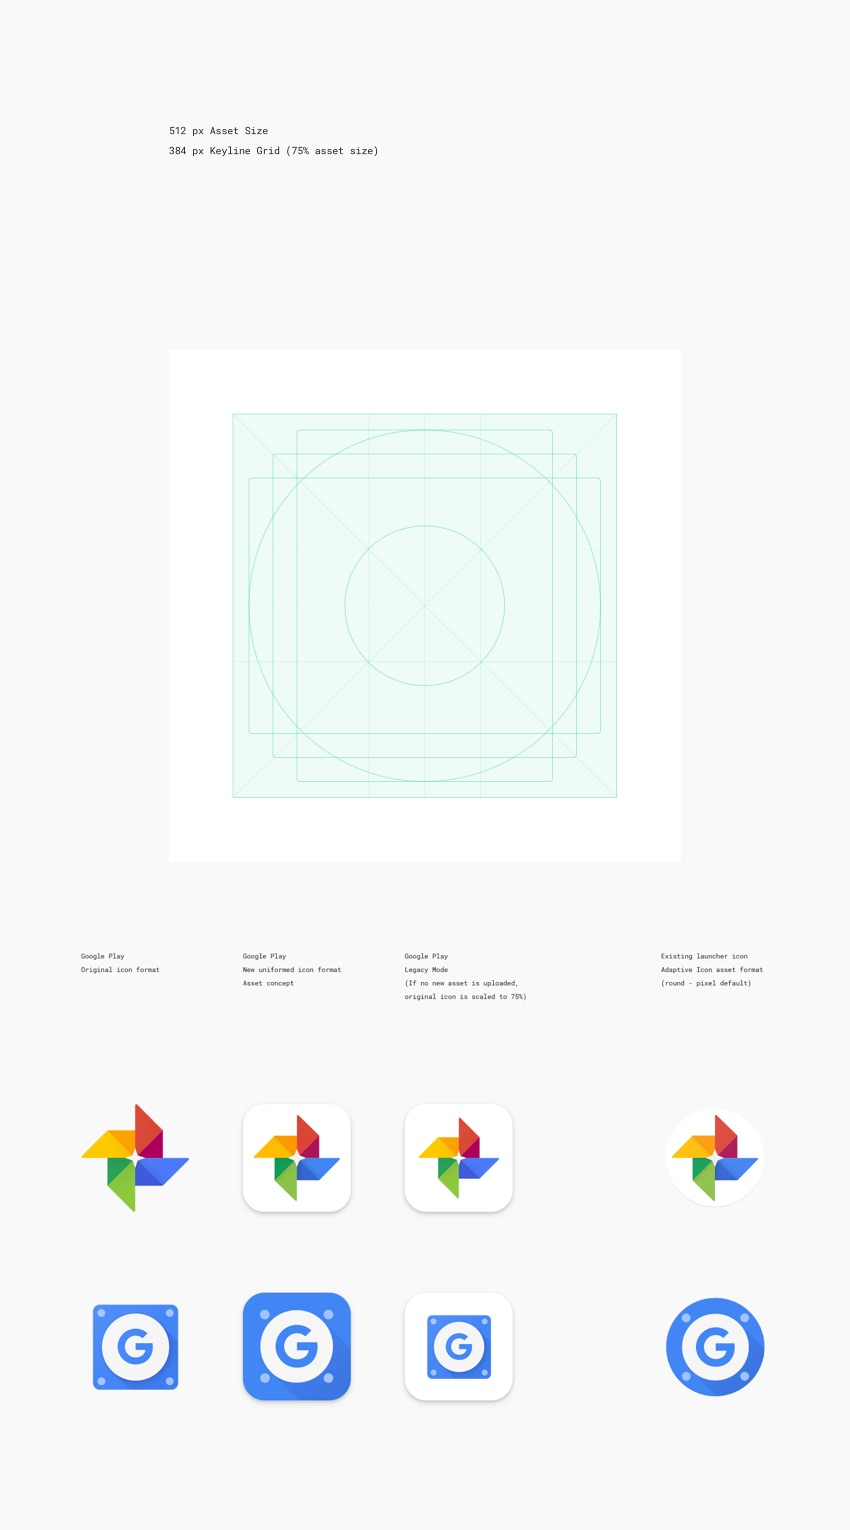 Google Play Icon Template for Sketch, PSD, Illustrator